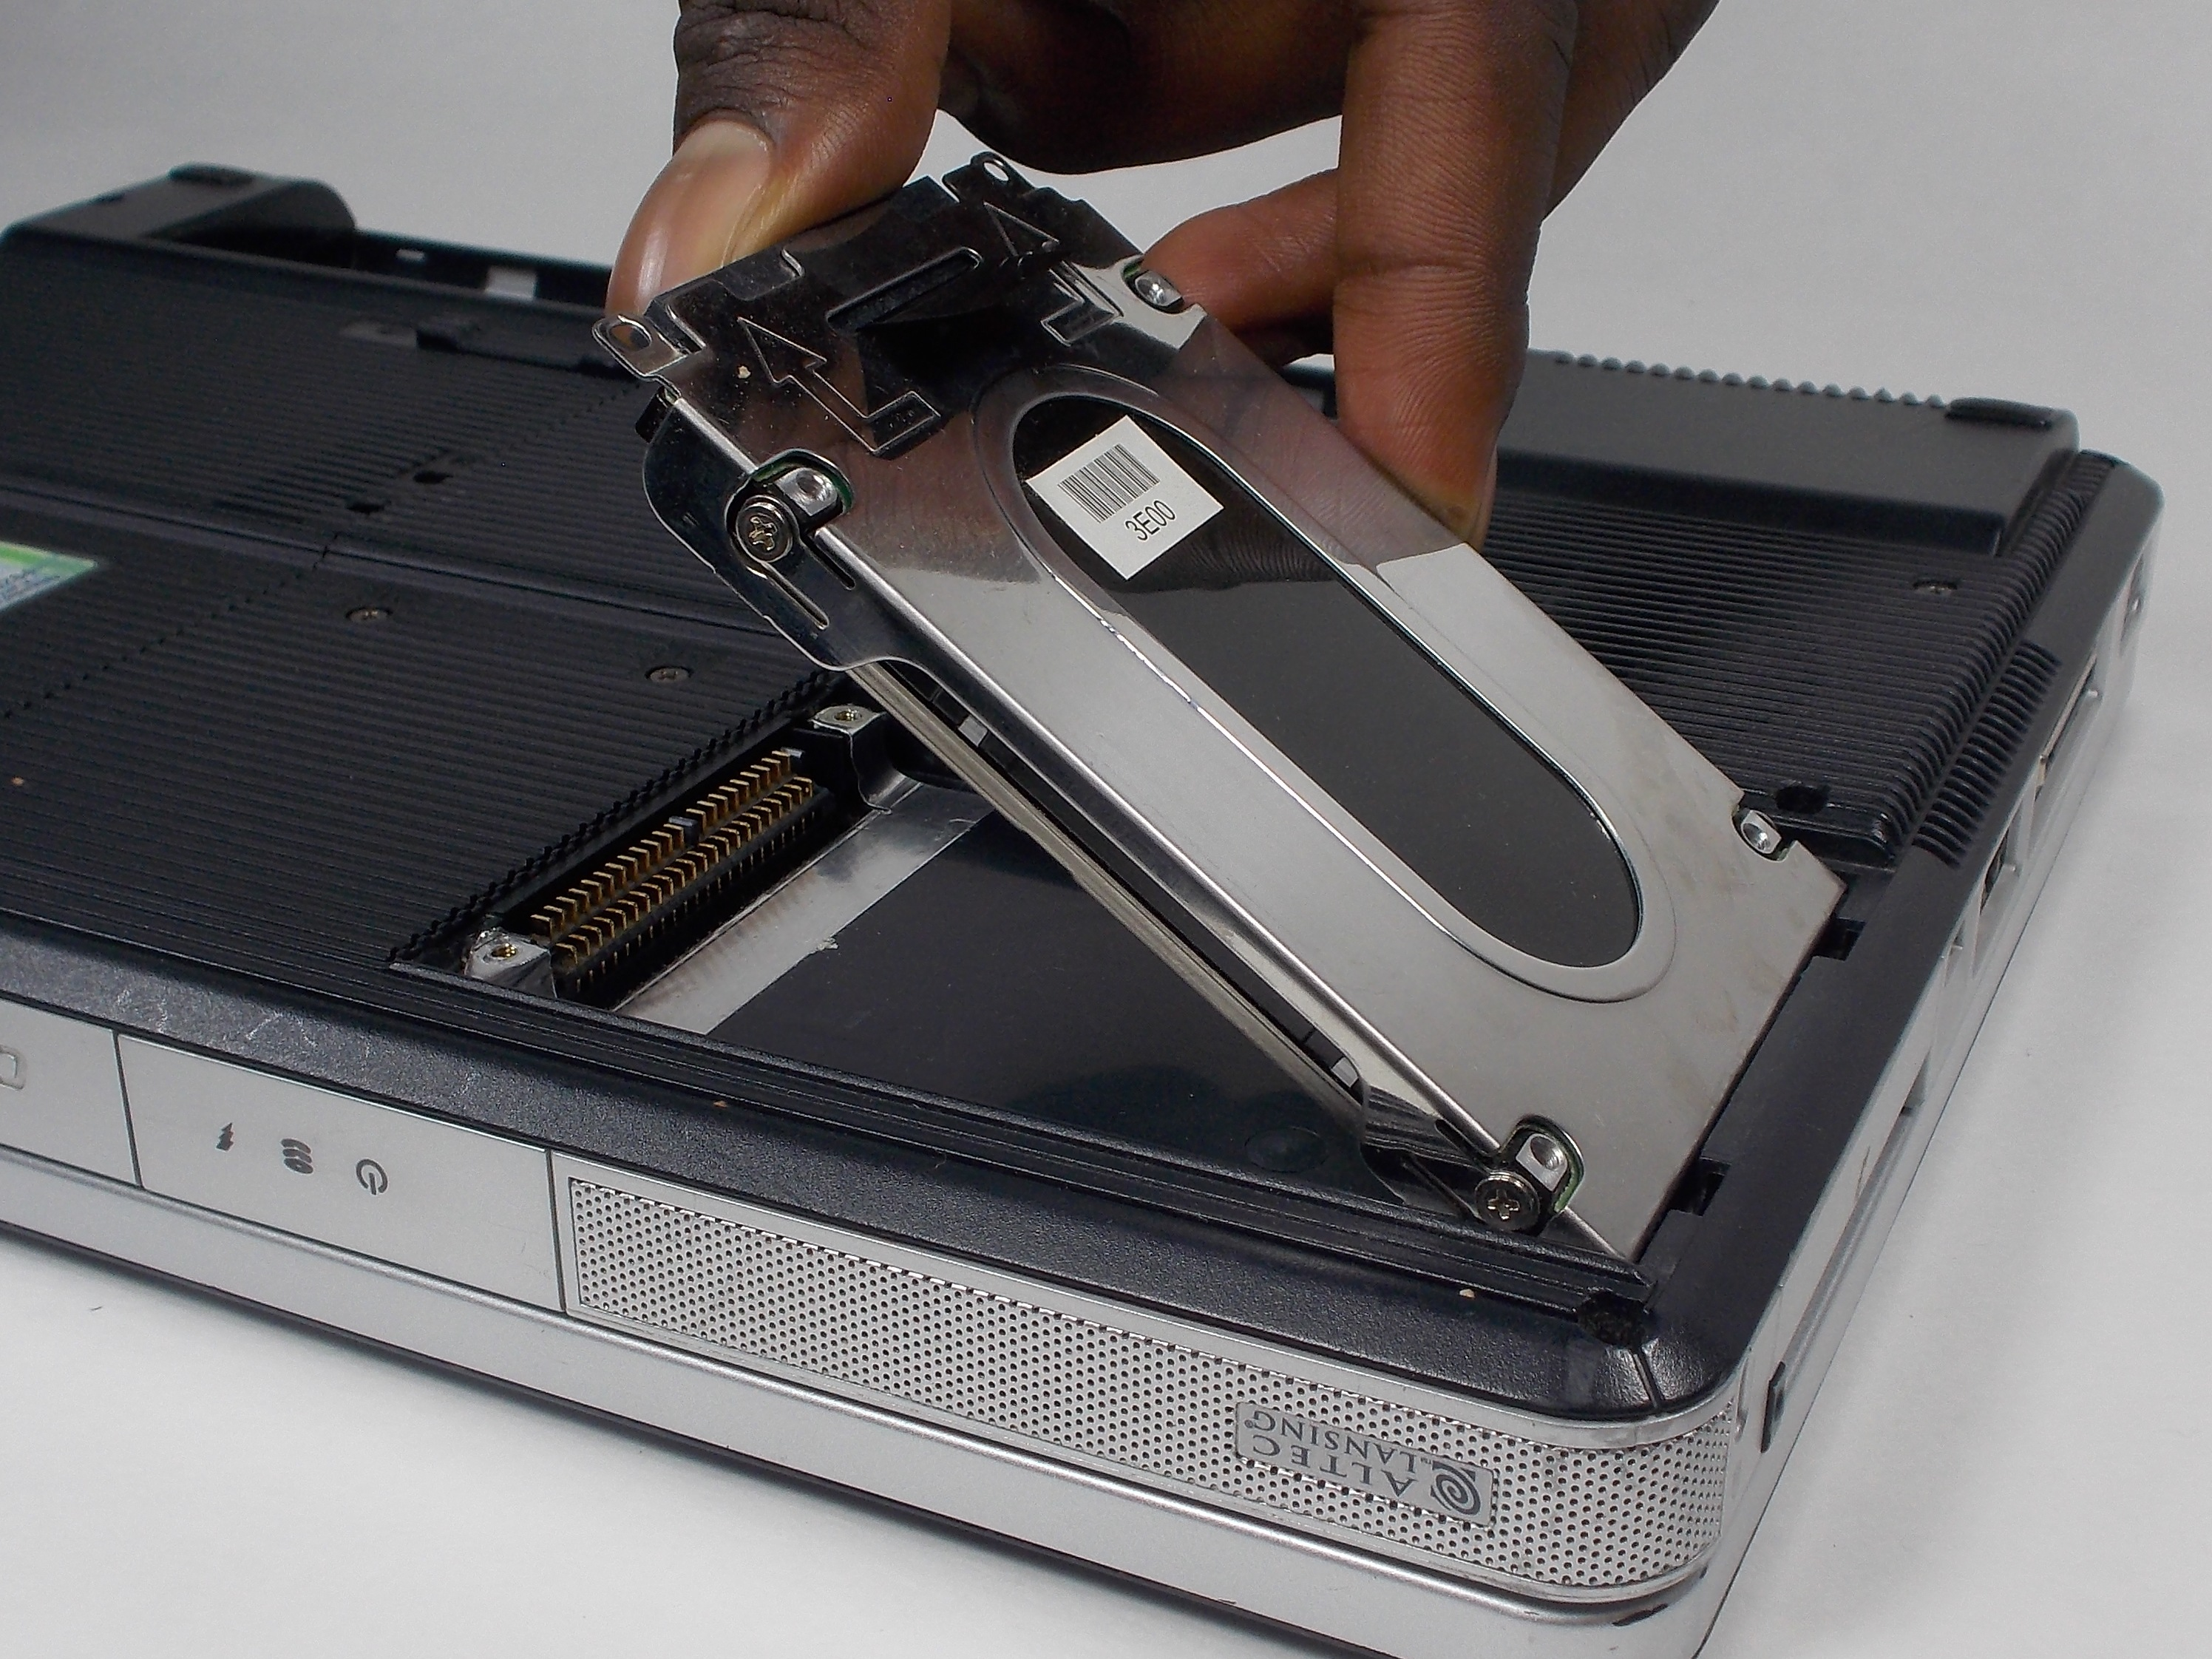 How Do I Replace a Hard Drive? - Lifewire